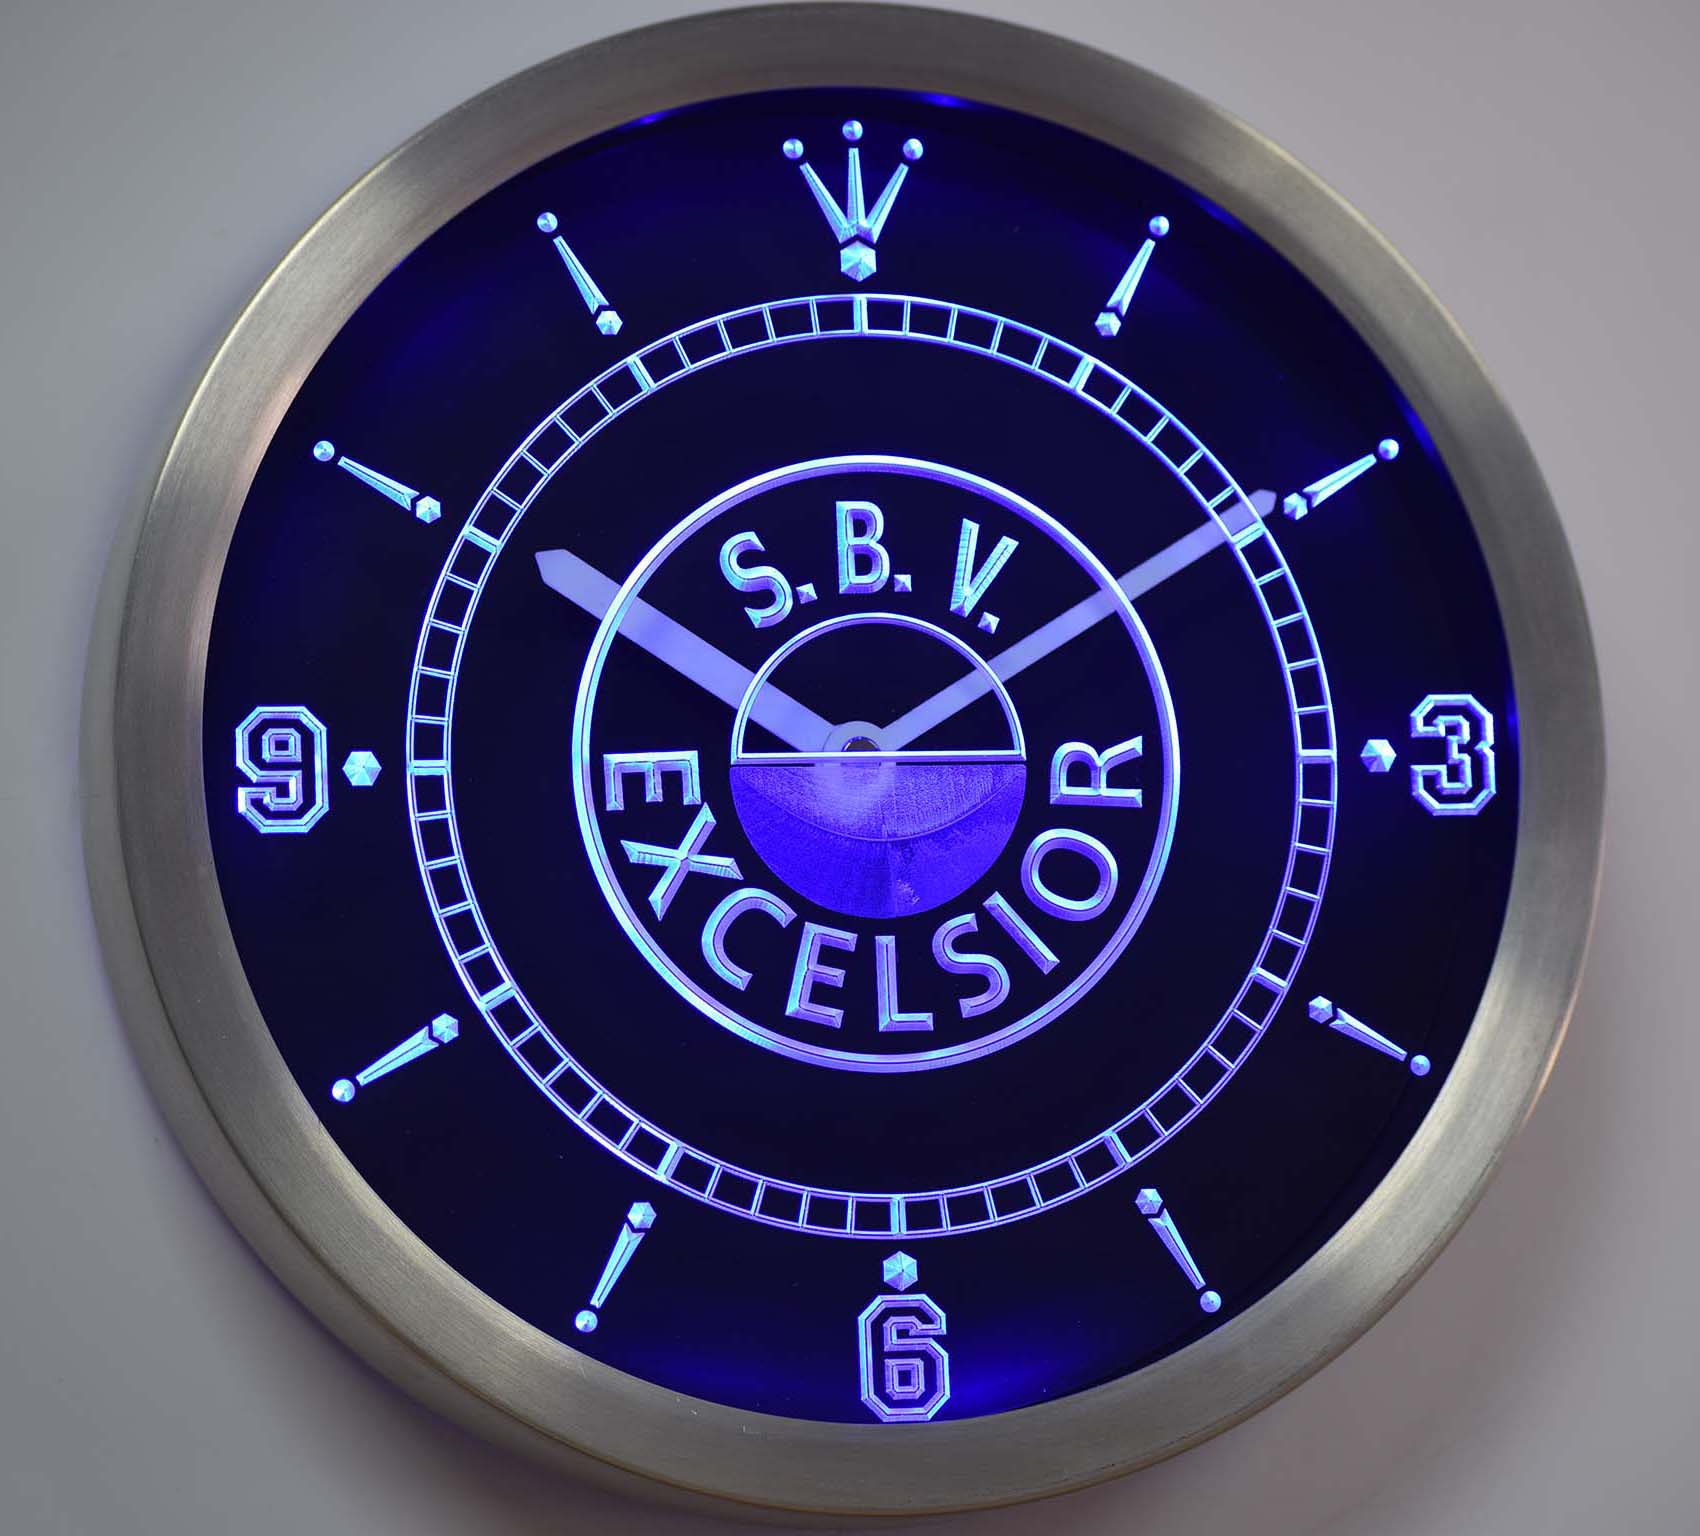 nc1022 S.B.V. Excelsior Dutch Eredivisie Football Neon Sign LED Wall Clock ...